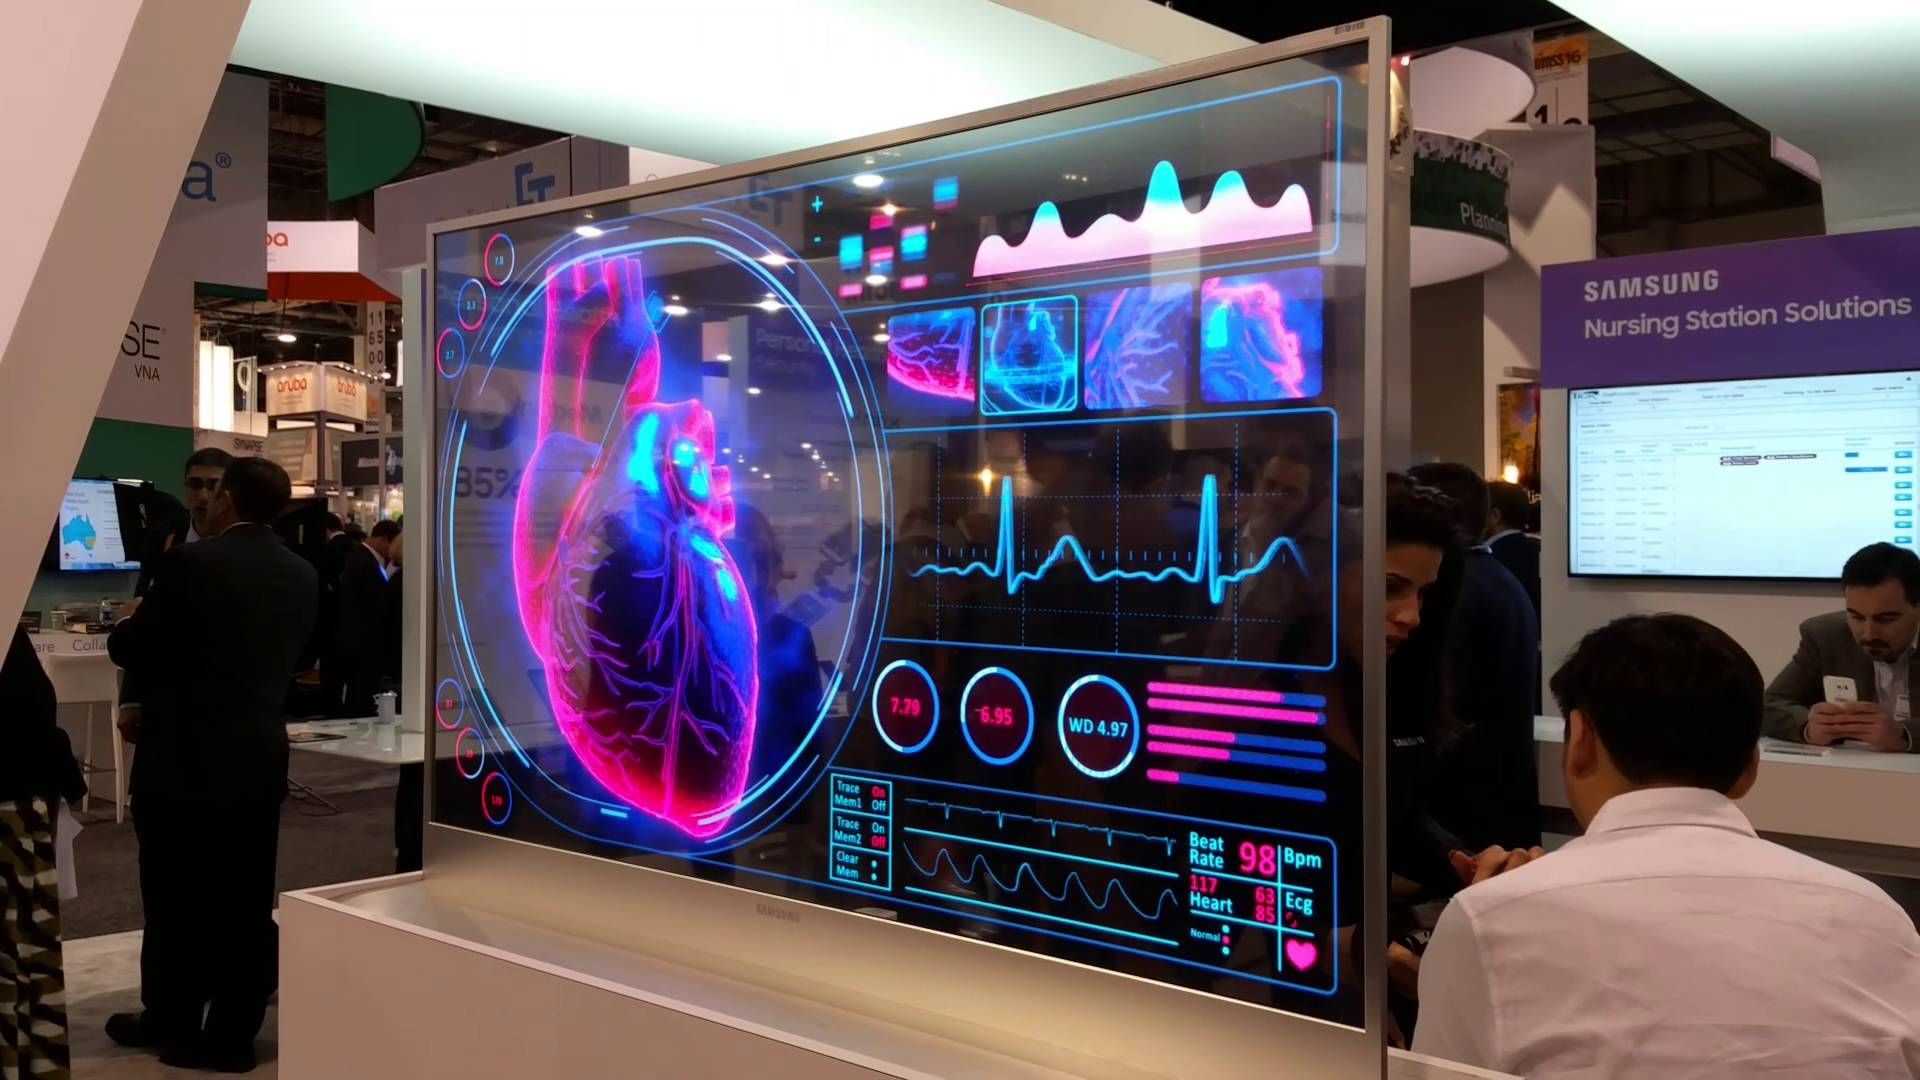 Samsung-OLED-Display-at-HIMSS-2016-Credit-Samsung.jpg (1920×1080) |  Motivasyon